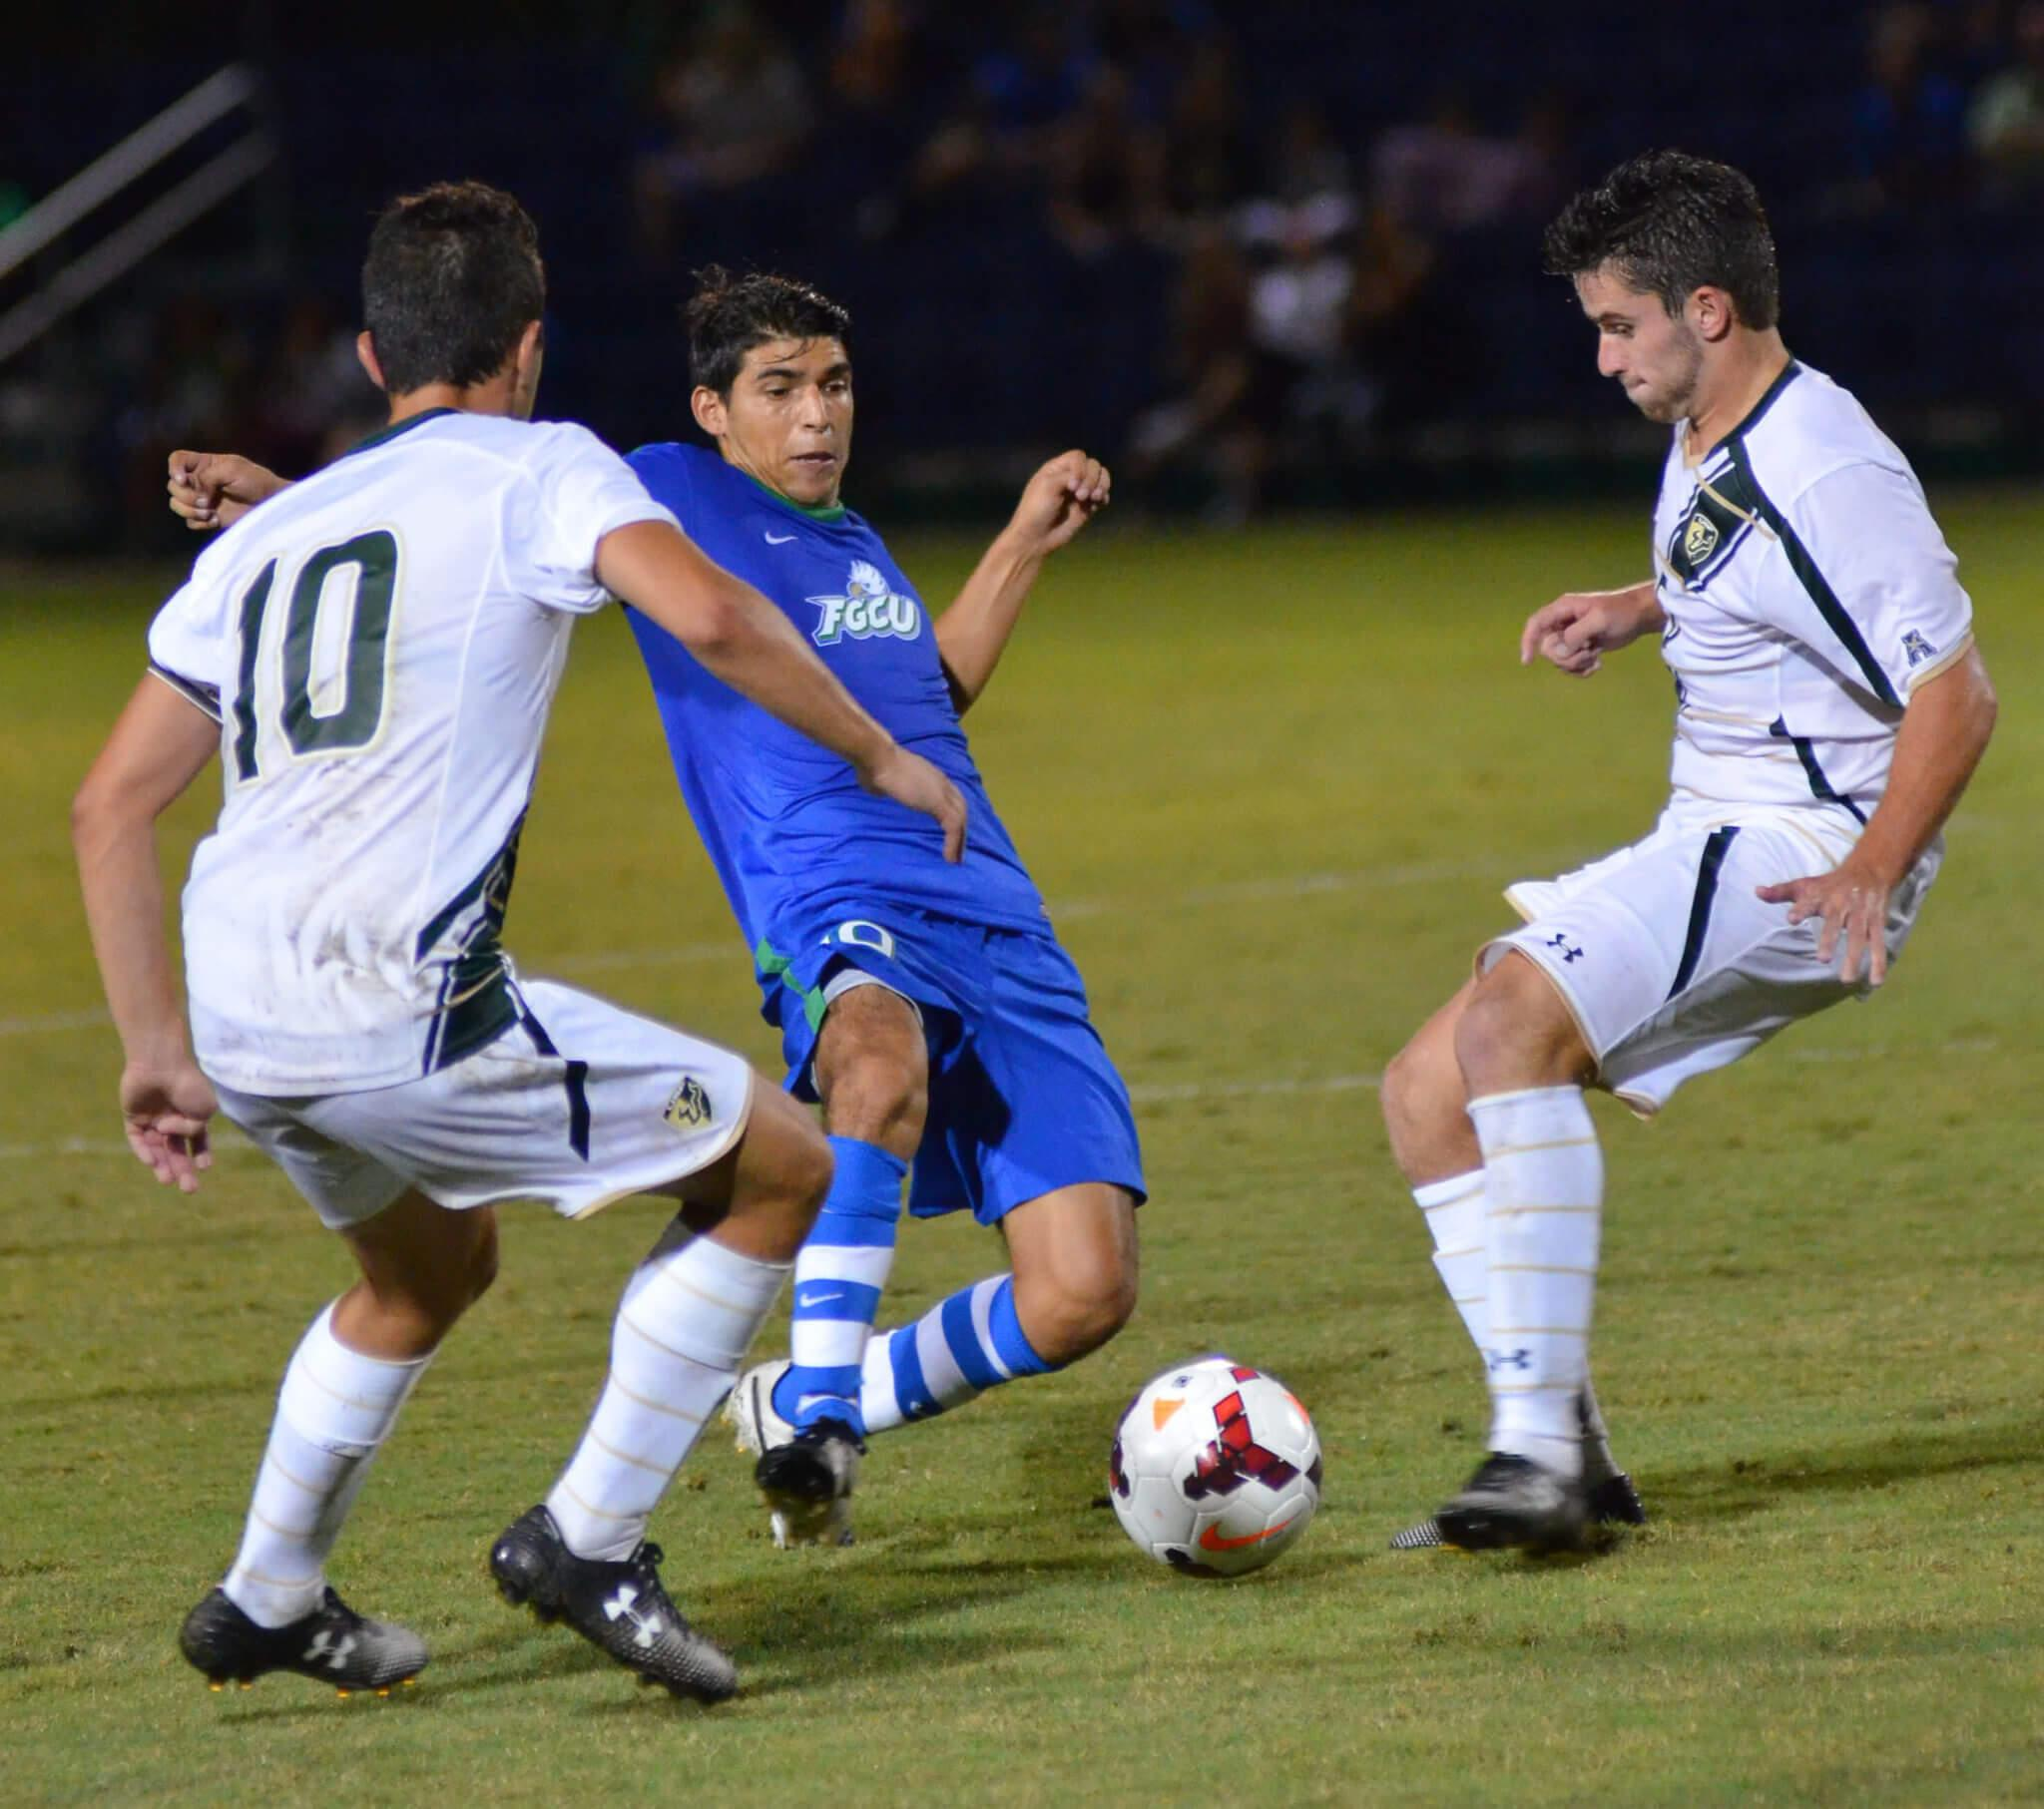 Eagles shut out Bulls, securing a 2-0 record